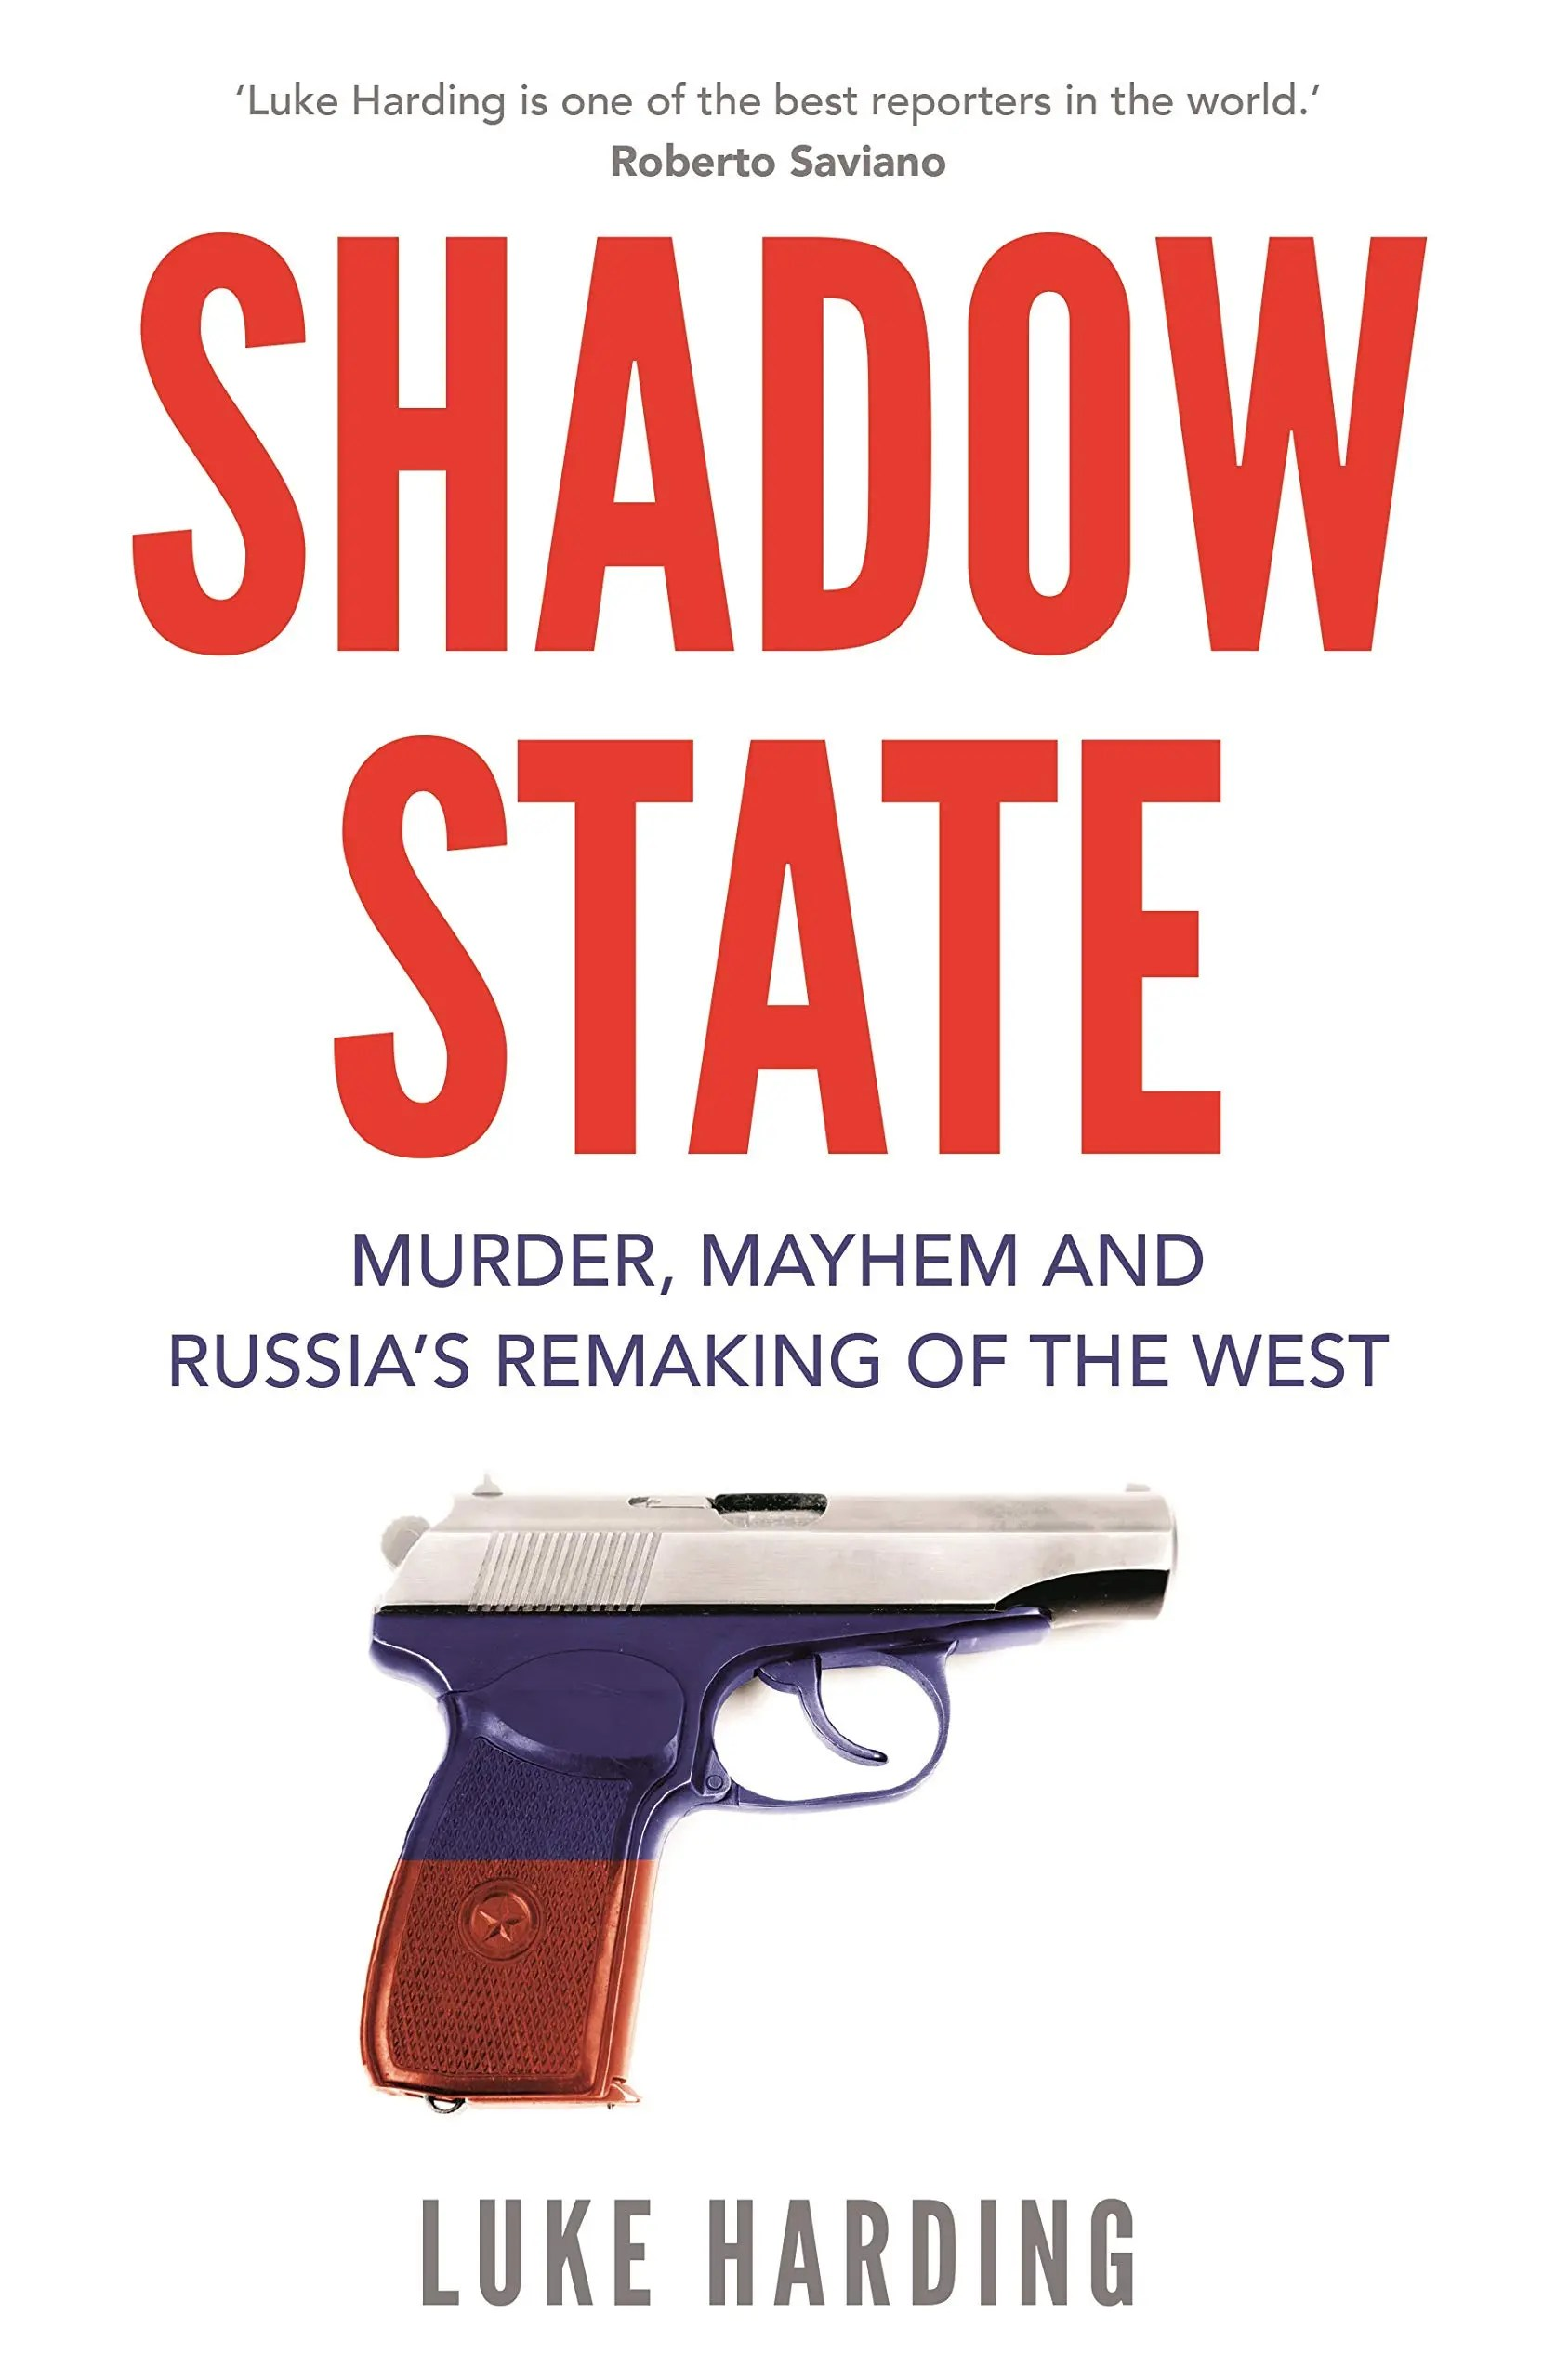 Martin Dewhirst reviews Luke Harding's new book, 'Shadow State: Murder, Mayhem and Russia's Remaking of the West'